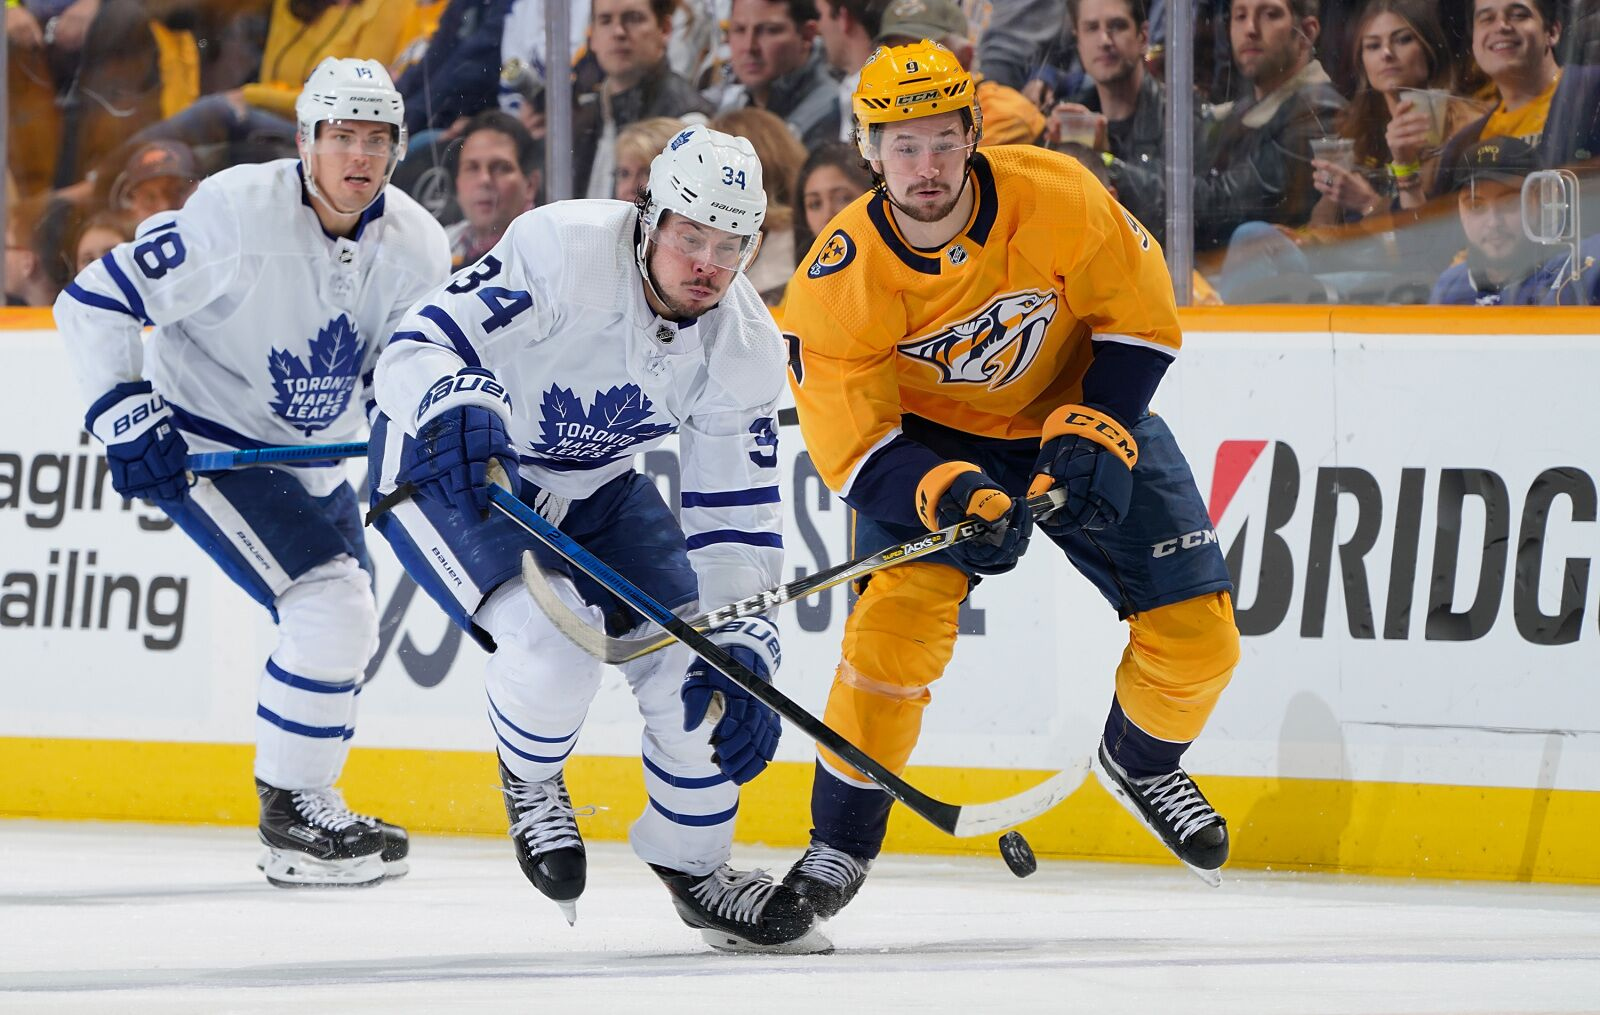 Nashville Predators Come Out of Break Against Toronto Maple Leafs